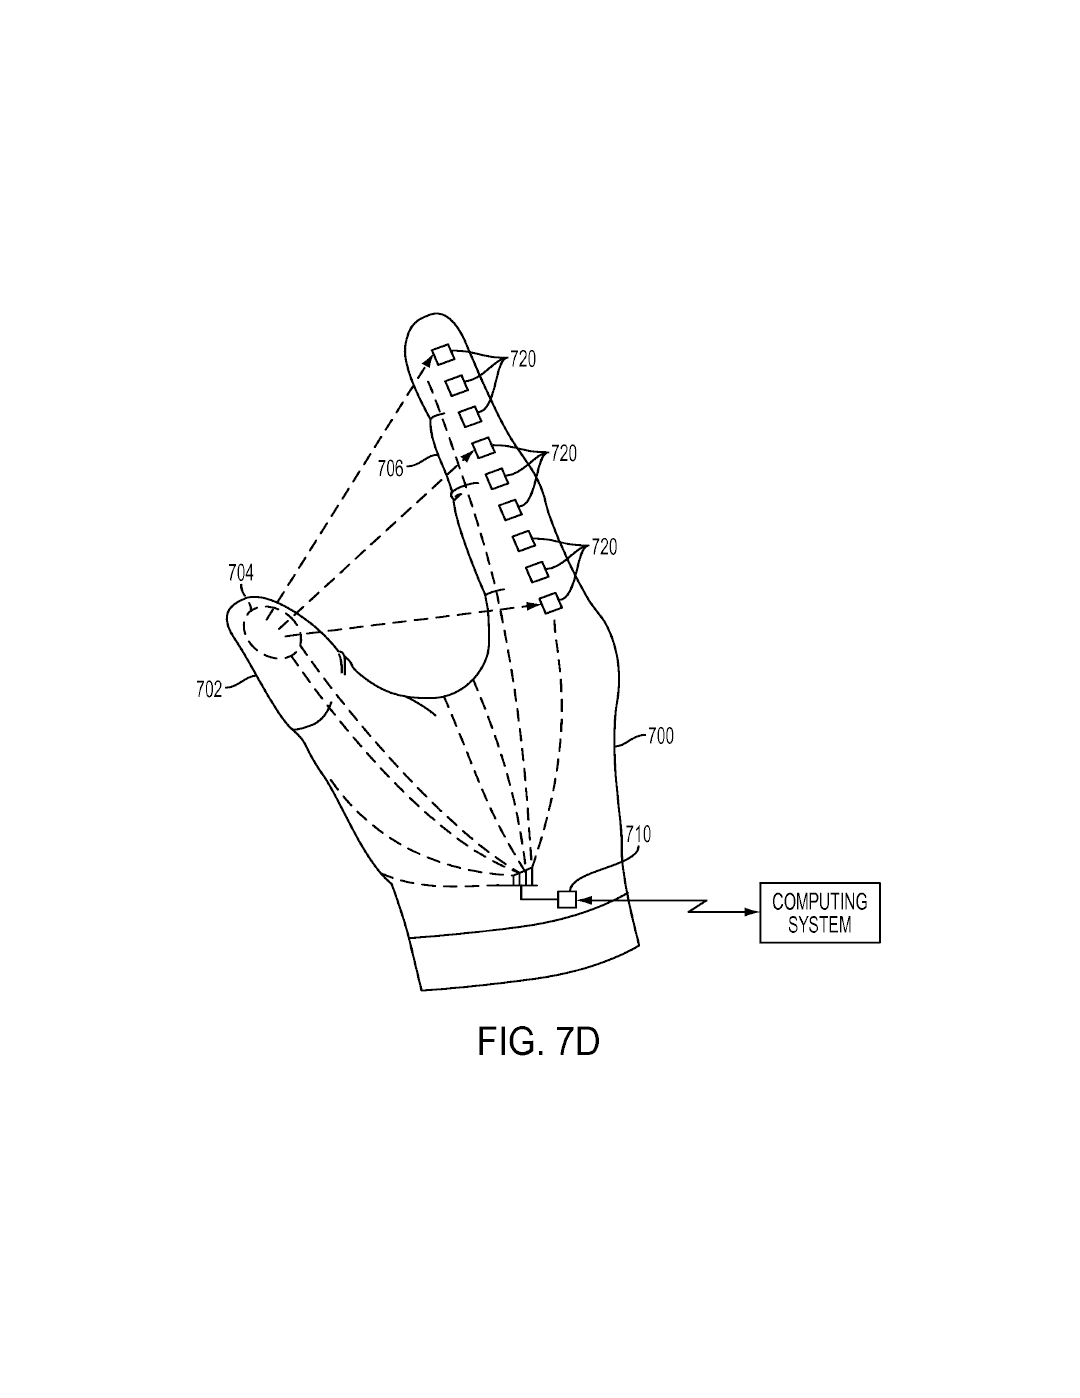 sony files 3 patents for glove controller for use with playstation PSU Apron 0091 fig 12 illustrates ponents of a head mounted display in accordance with an embodiment of the invention